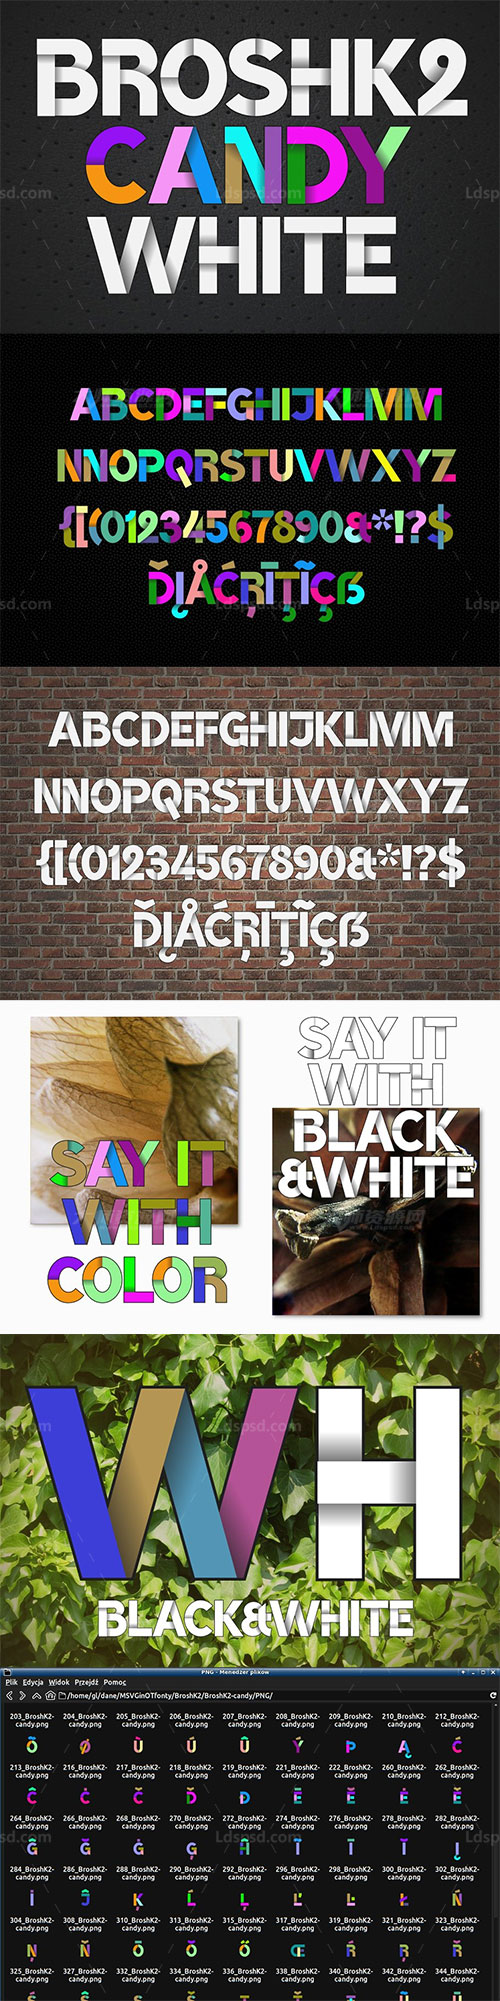 两款堆叠效果的英文SVG字体(多彩/白色):Color fonts BroshK2-candy & white